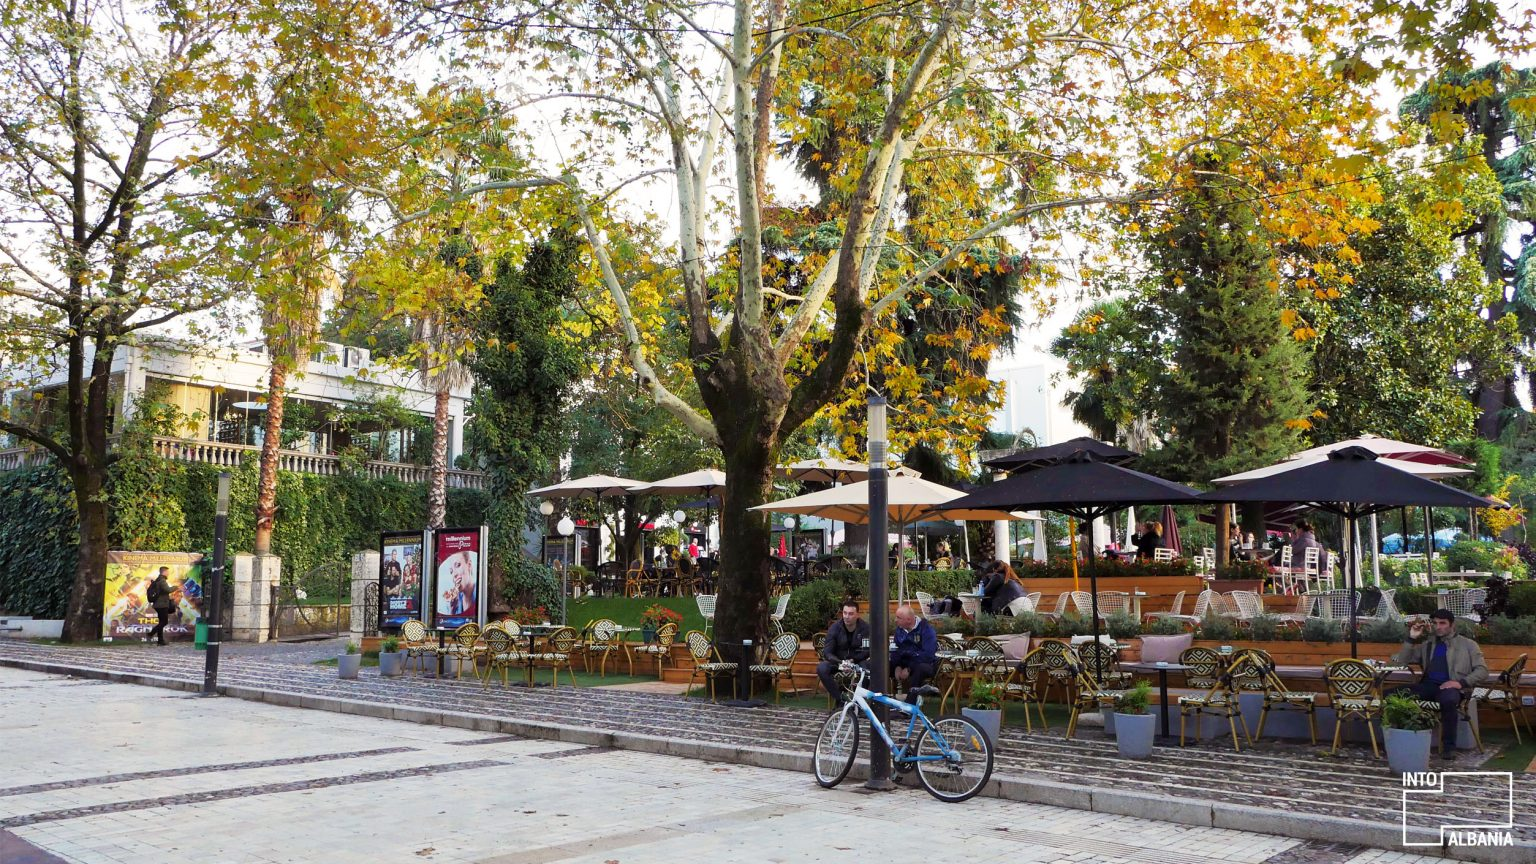 Tirana's Promenade, photo by IntoAlbania